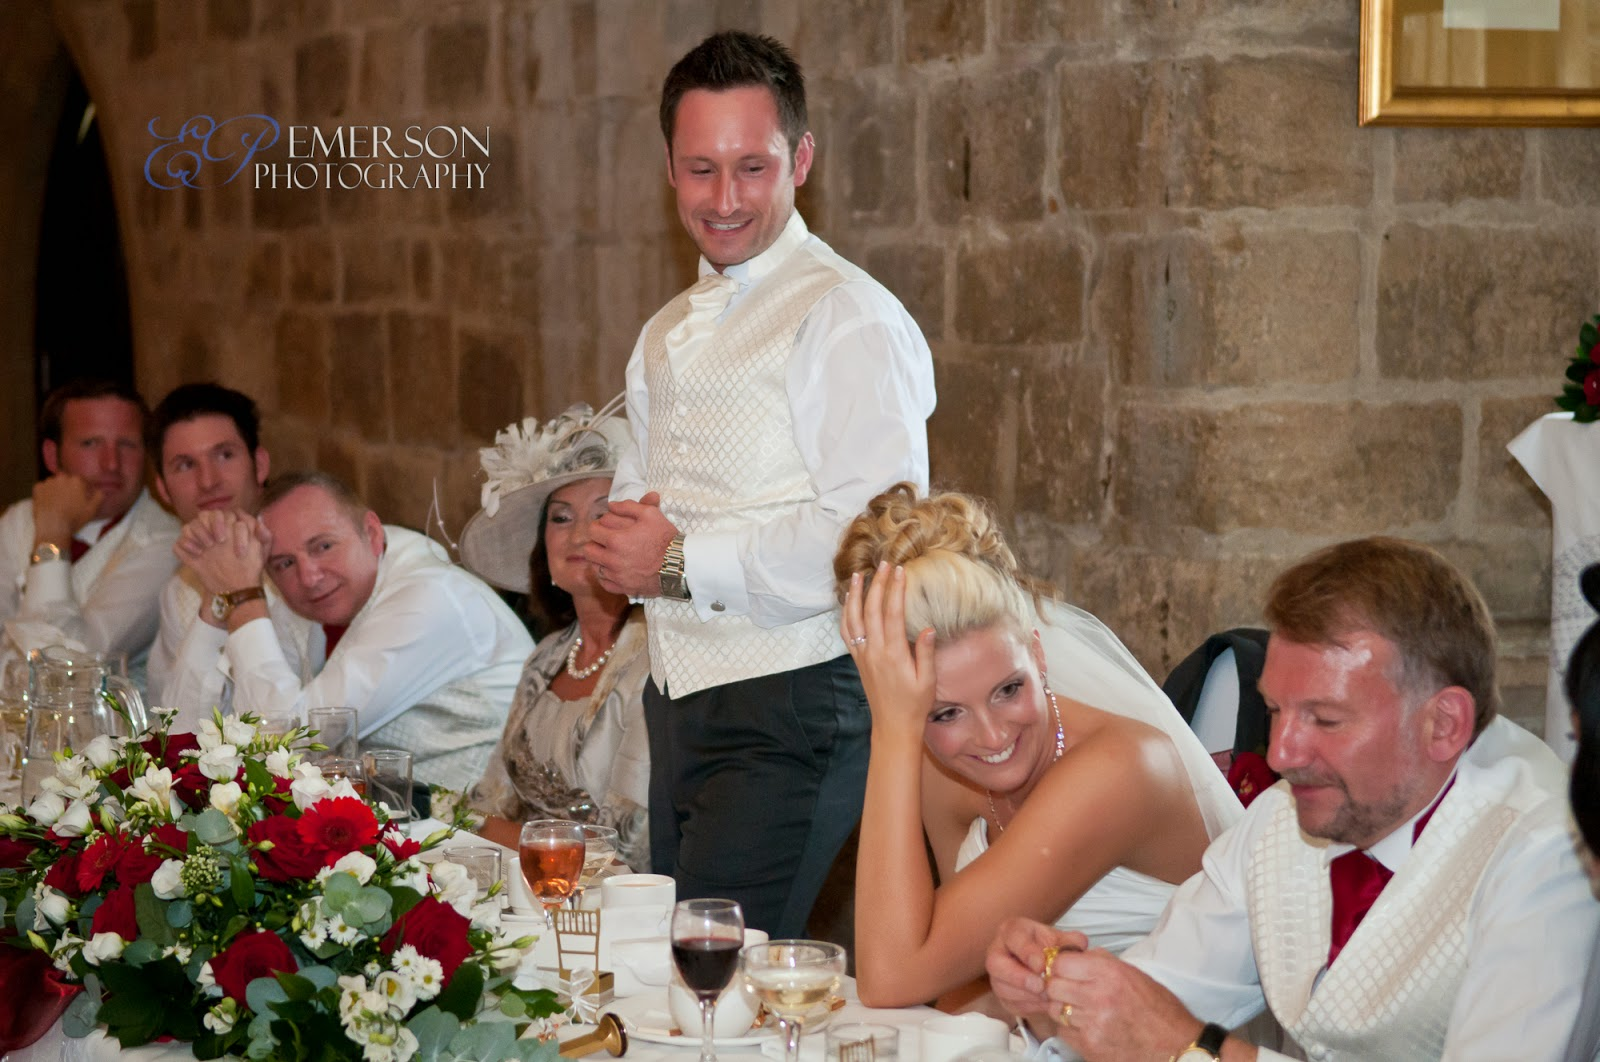 Emerson Photography at Langley Castle wedding, Hexham